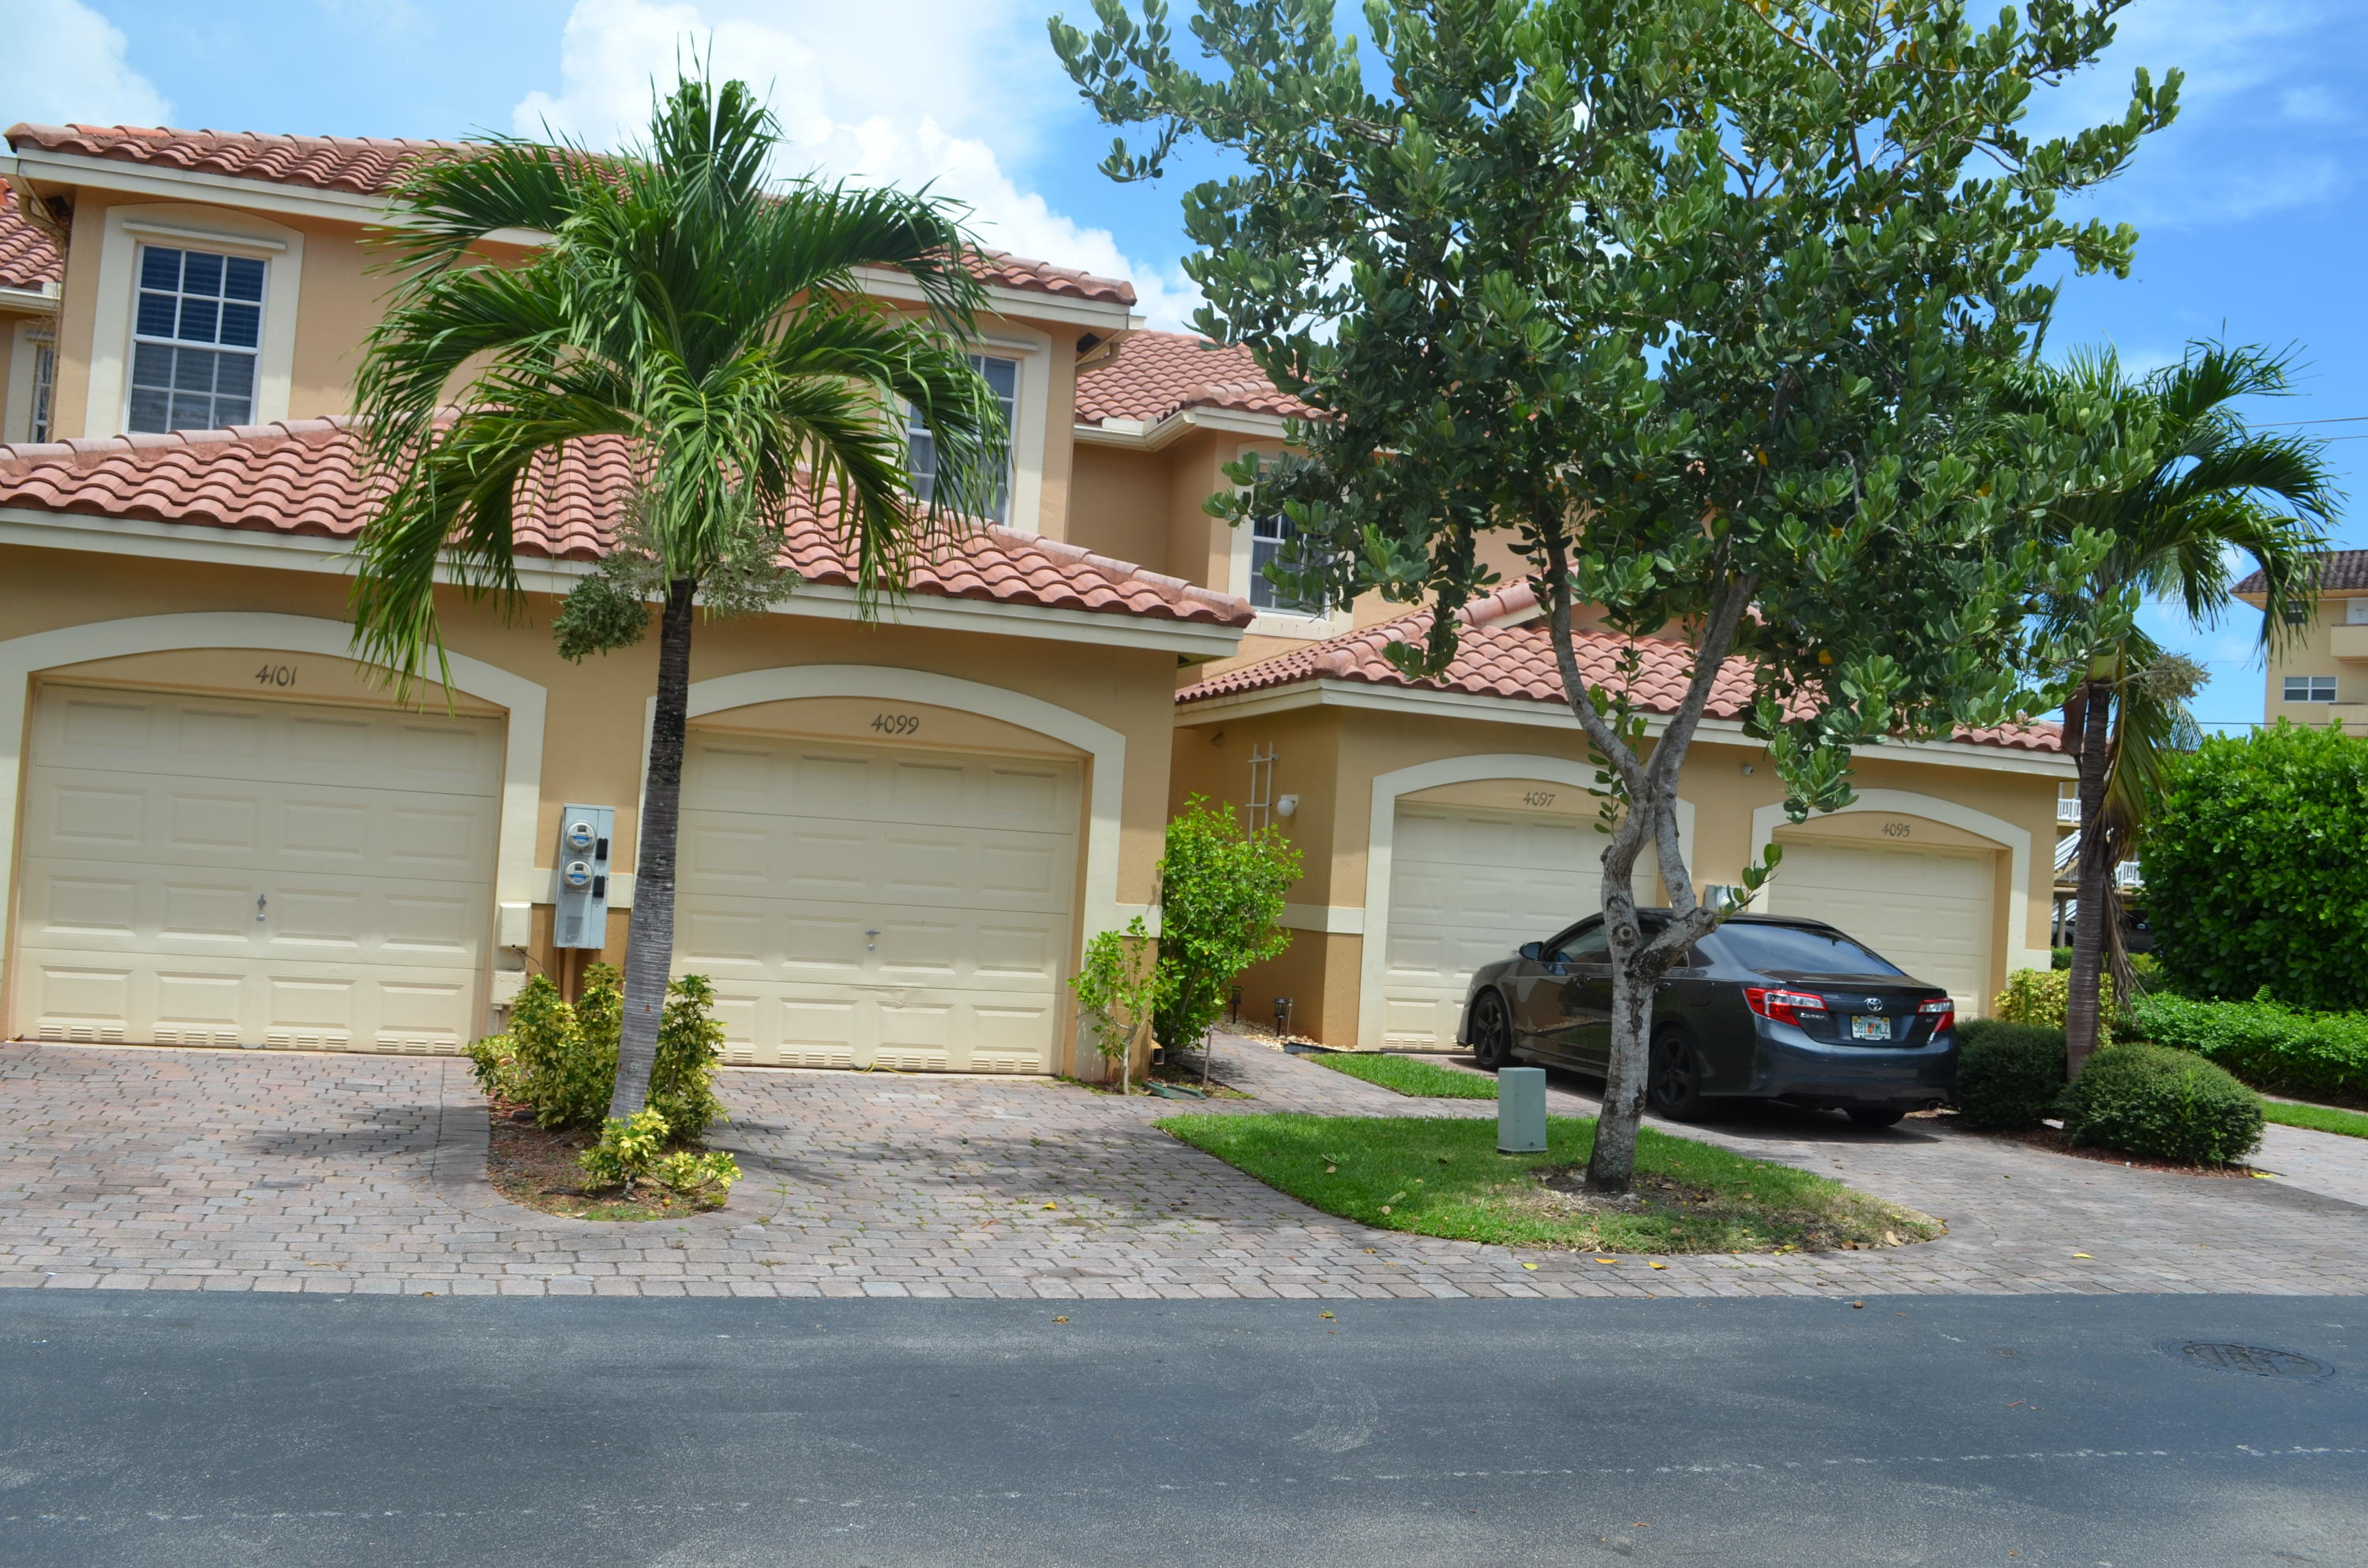 Home for sale in San Briana Deerfield Beach Florida